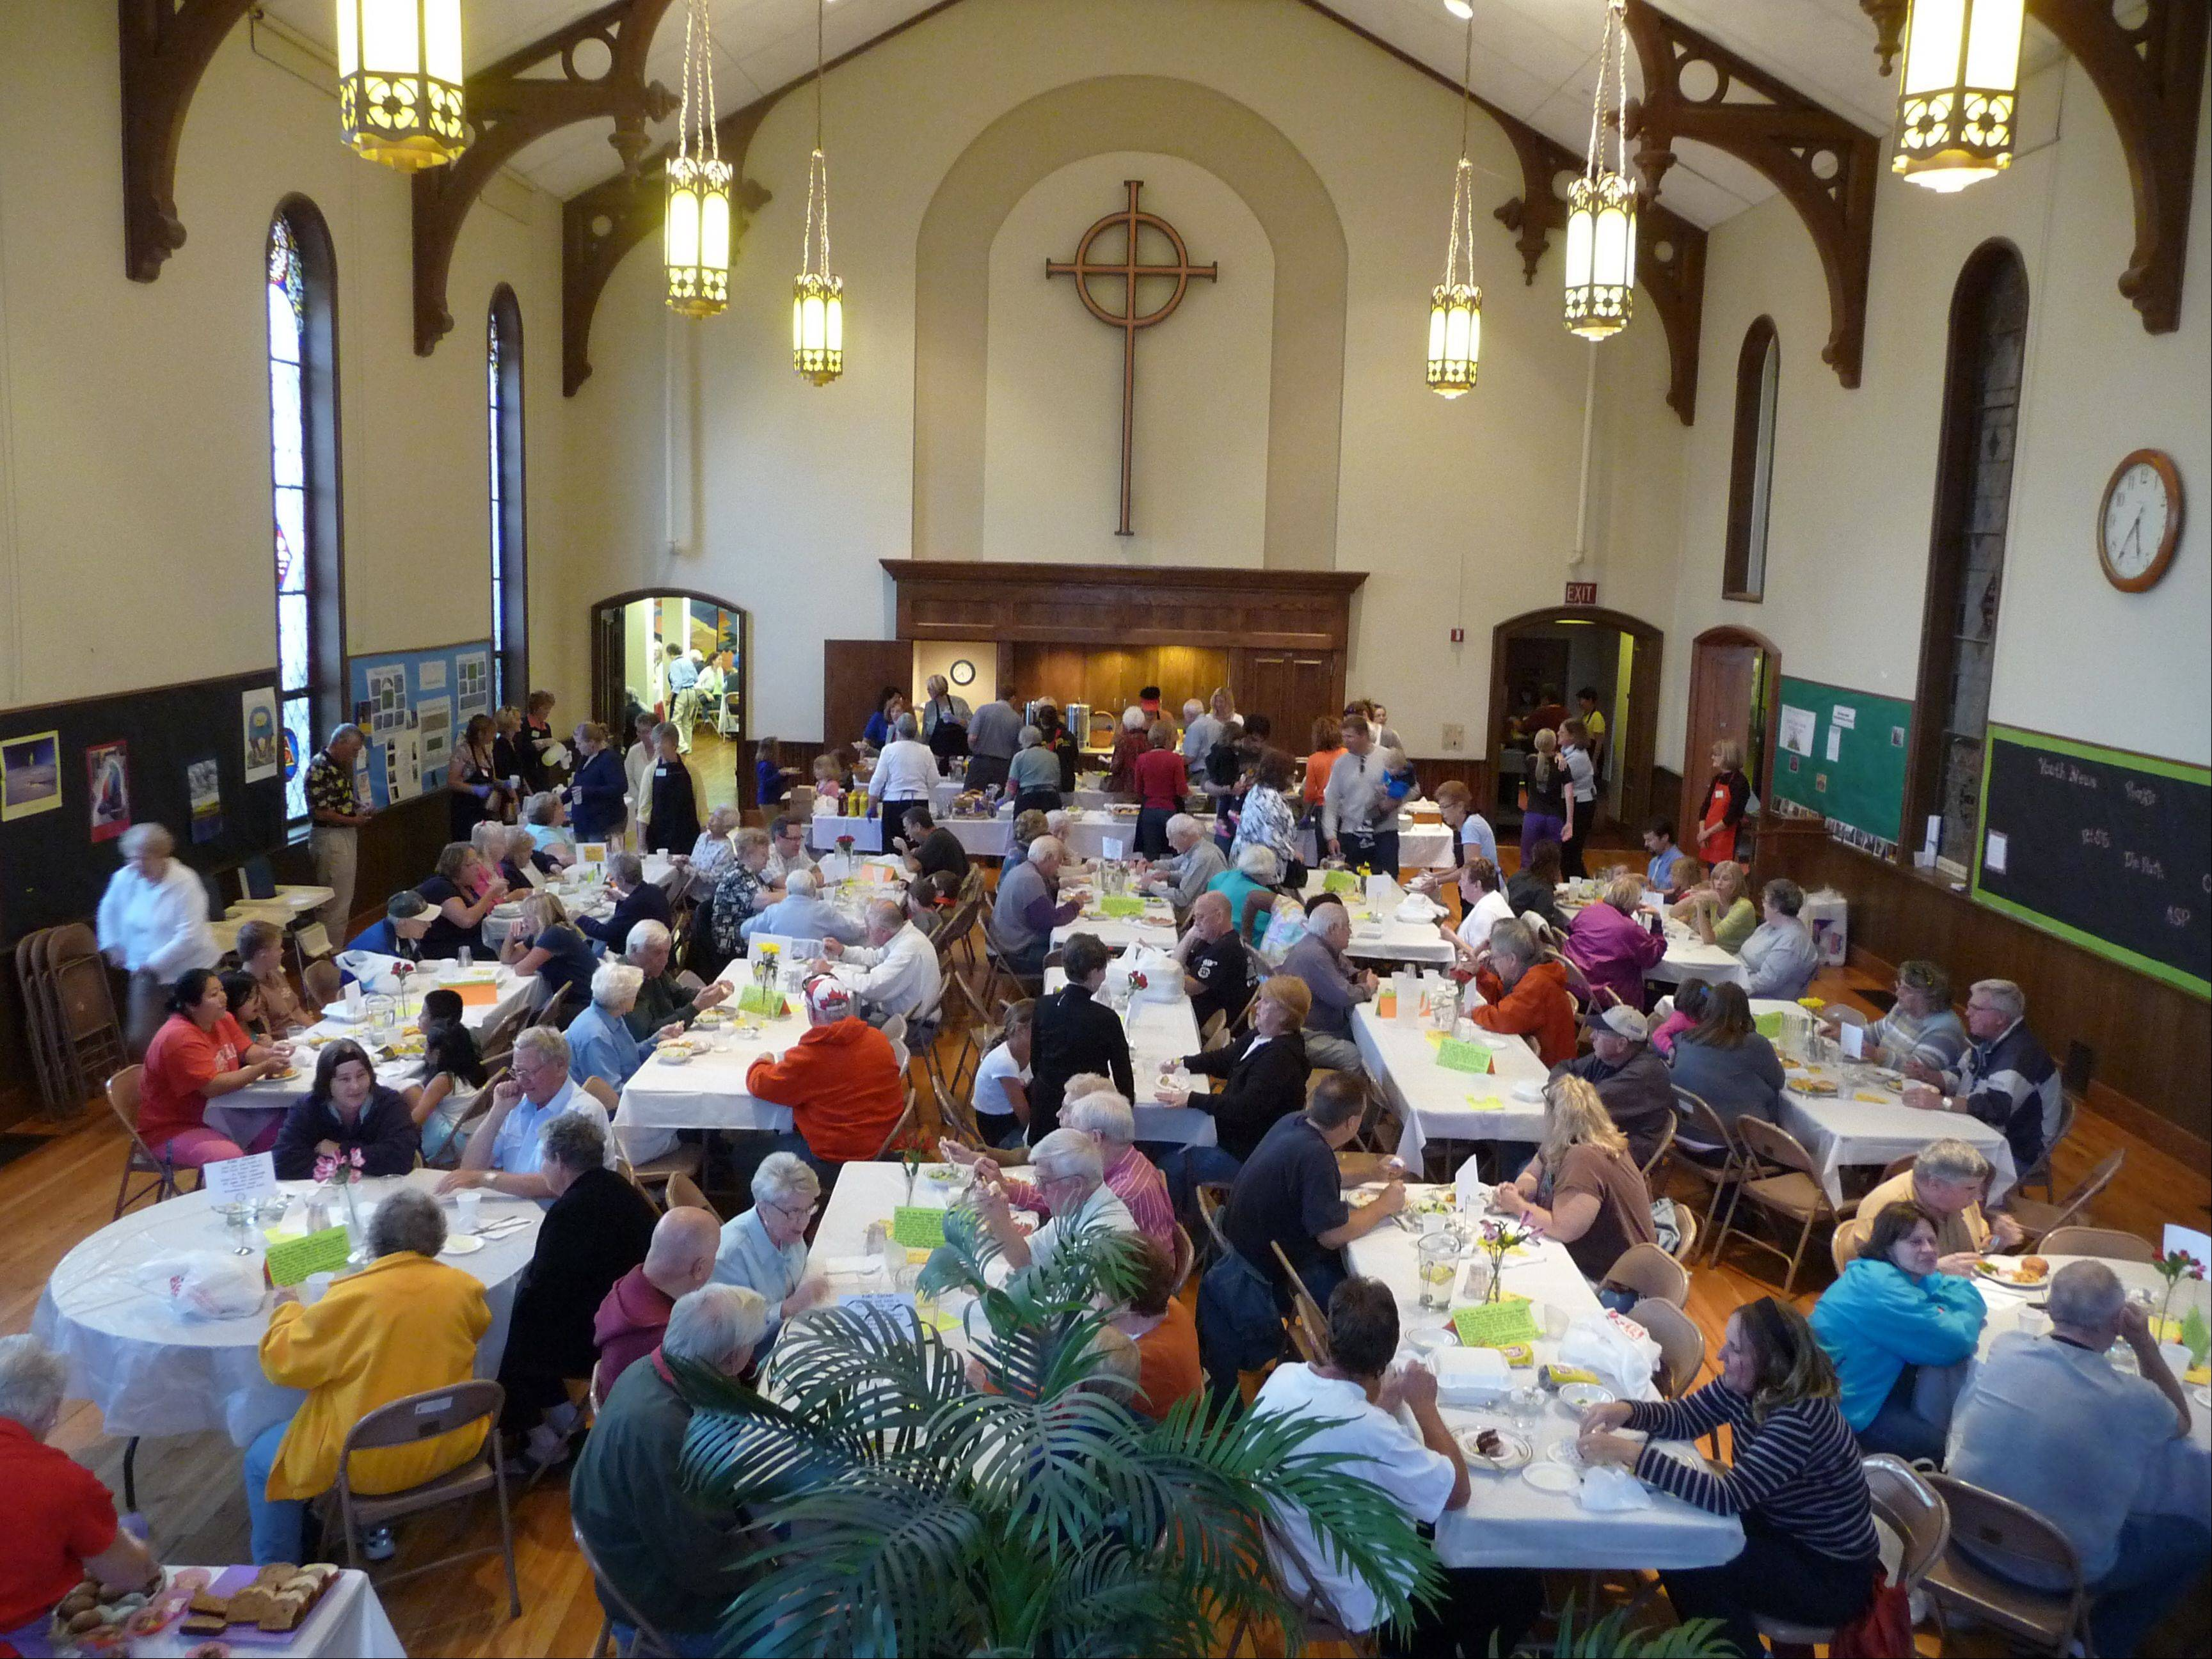 Diners enjoy the meal in the dining room at the Geneva United Methodist Church.